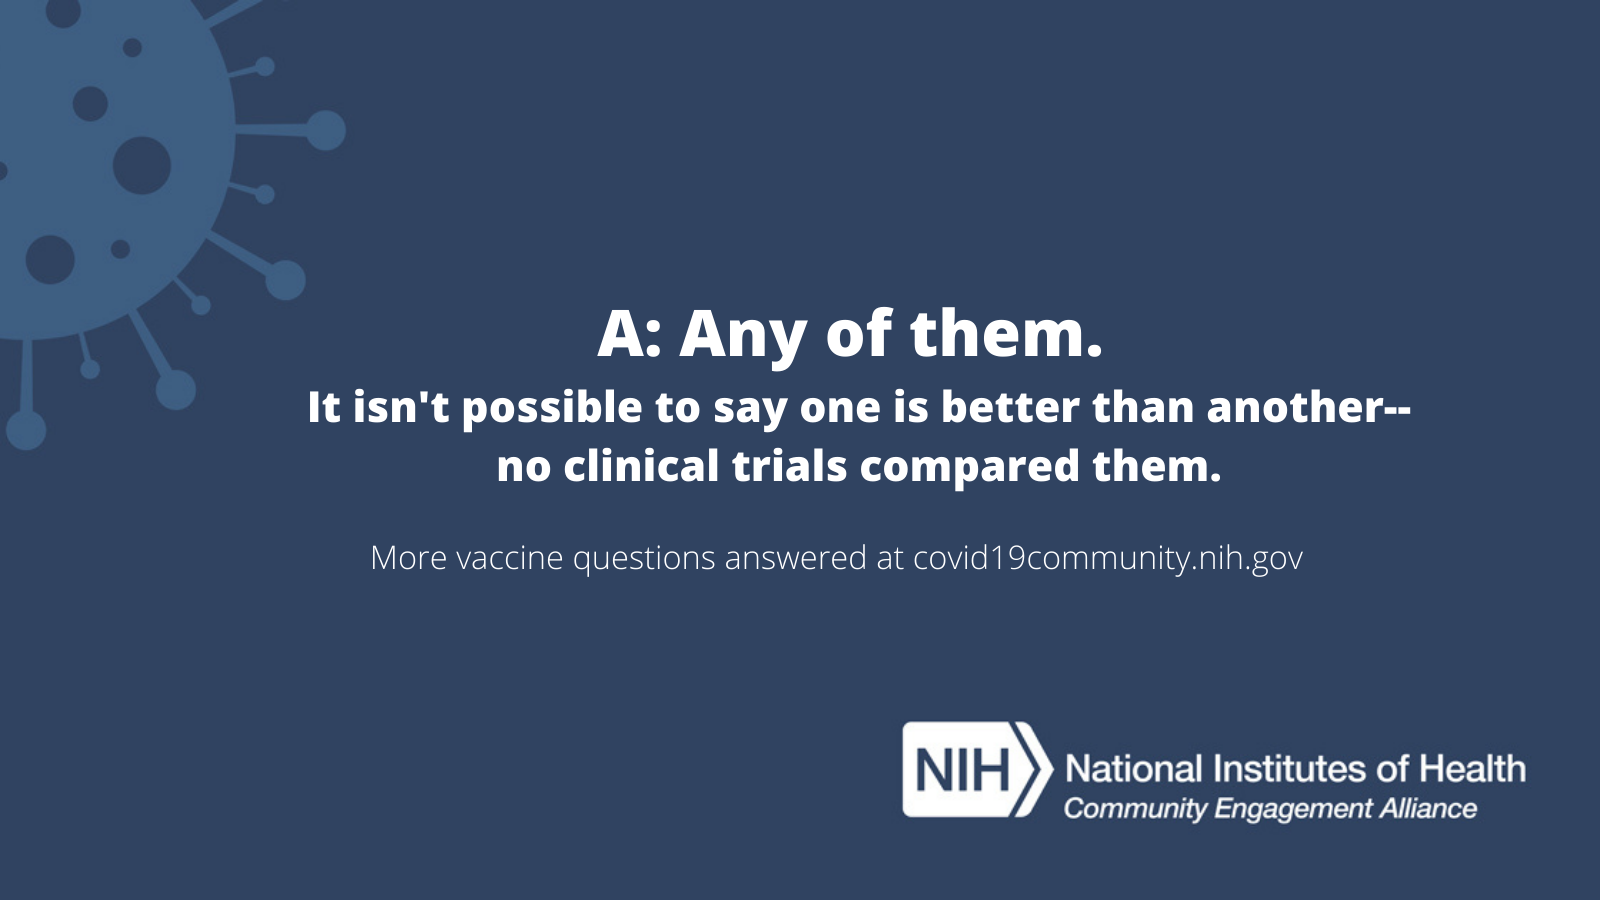 A: Any of them. Is isn't possible to say one is better than another - no clinical trials compared them. More vaccine questions answered at covid19community.nih.gov